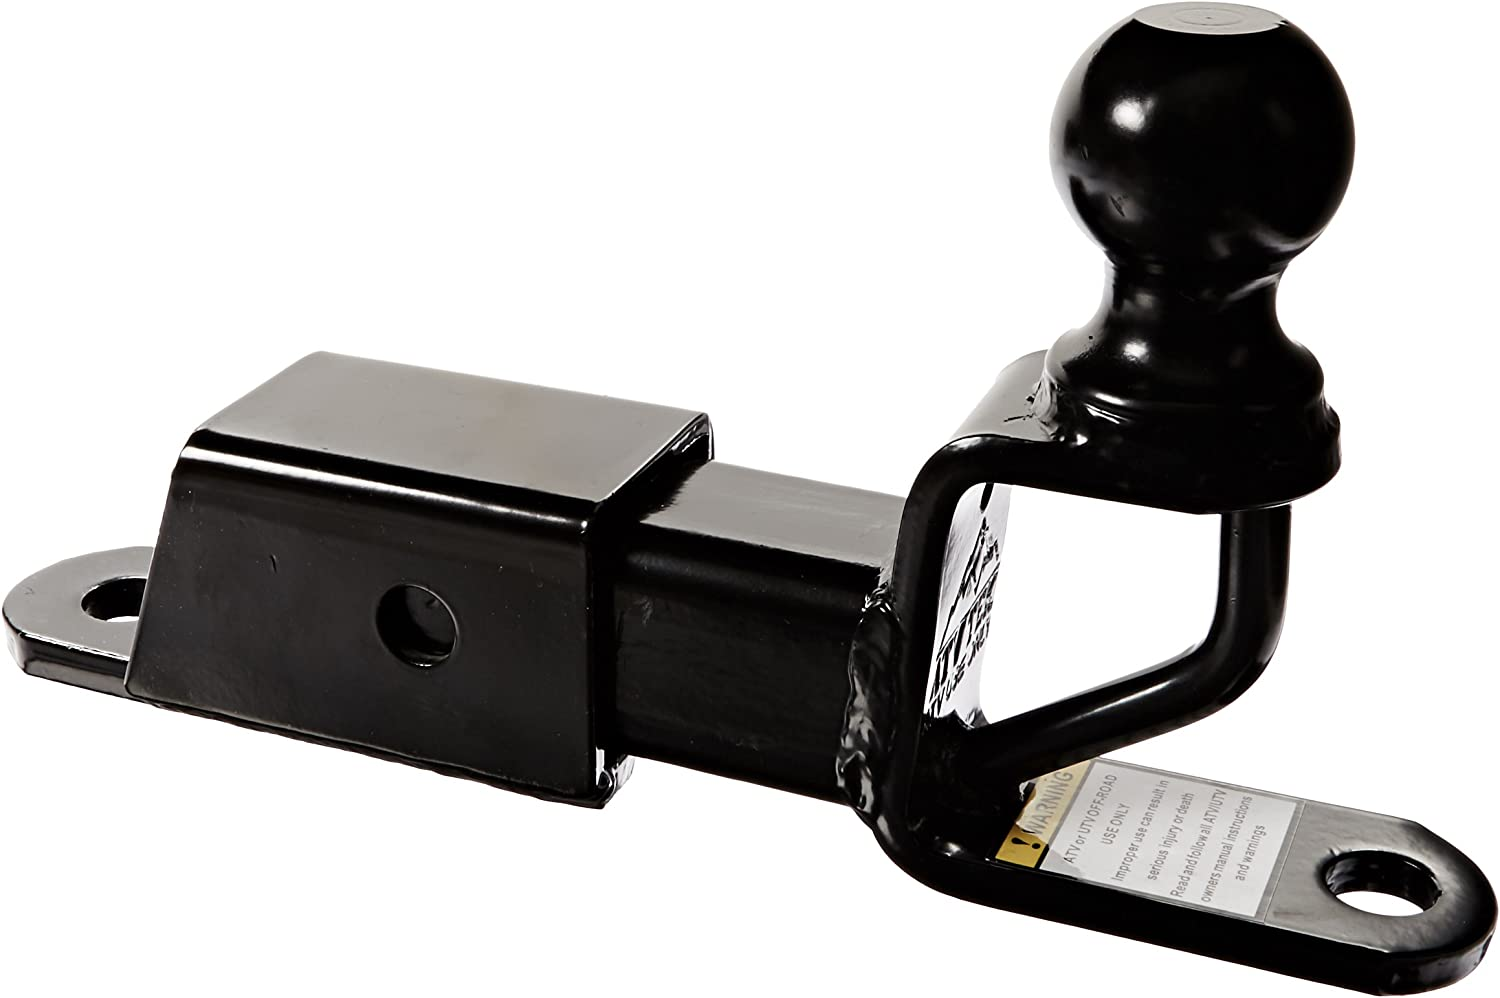 ATV TEK, TRH1 Trio HD Receiver Hitch with Ball Mount, Heavy-Duty Tow Hitch